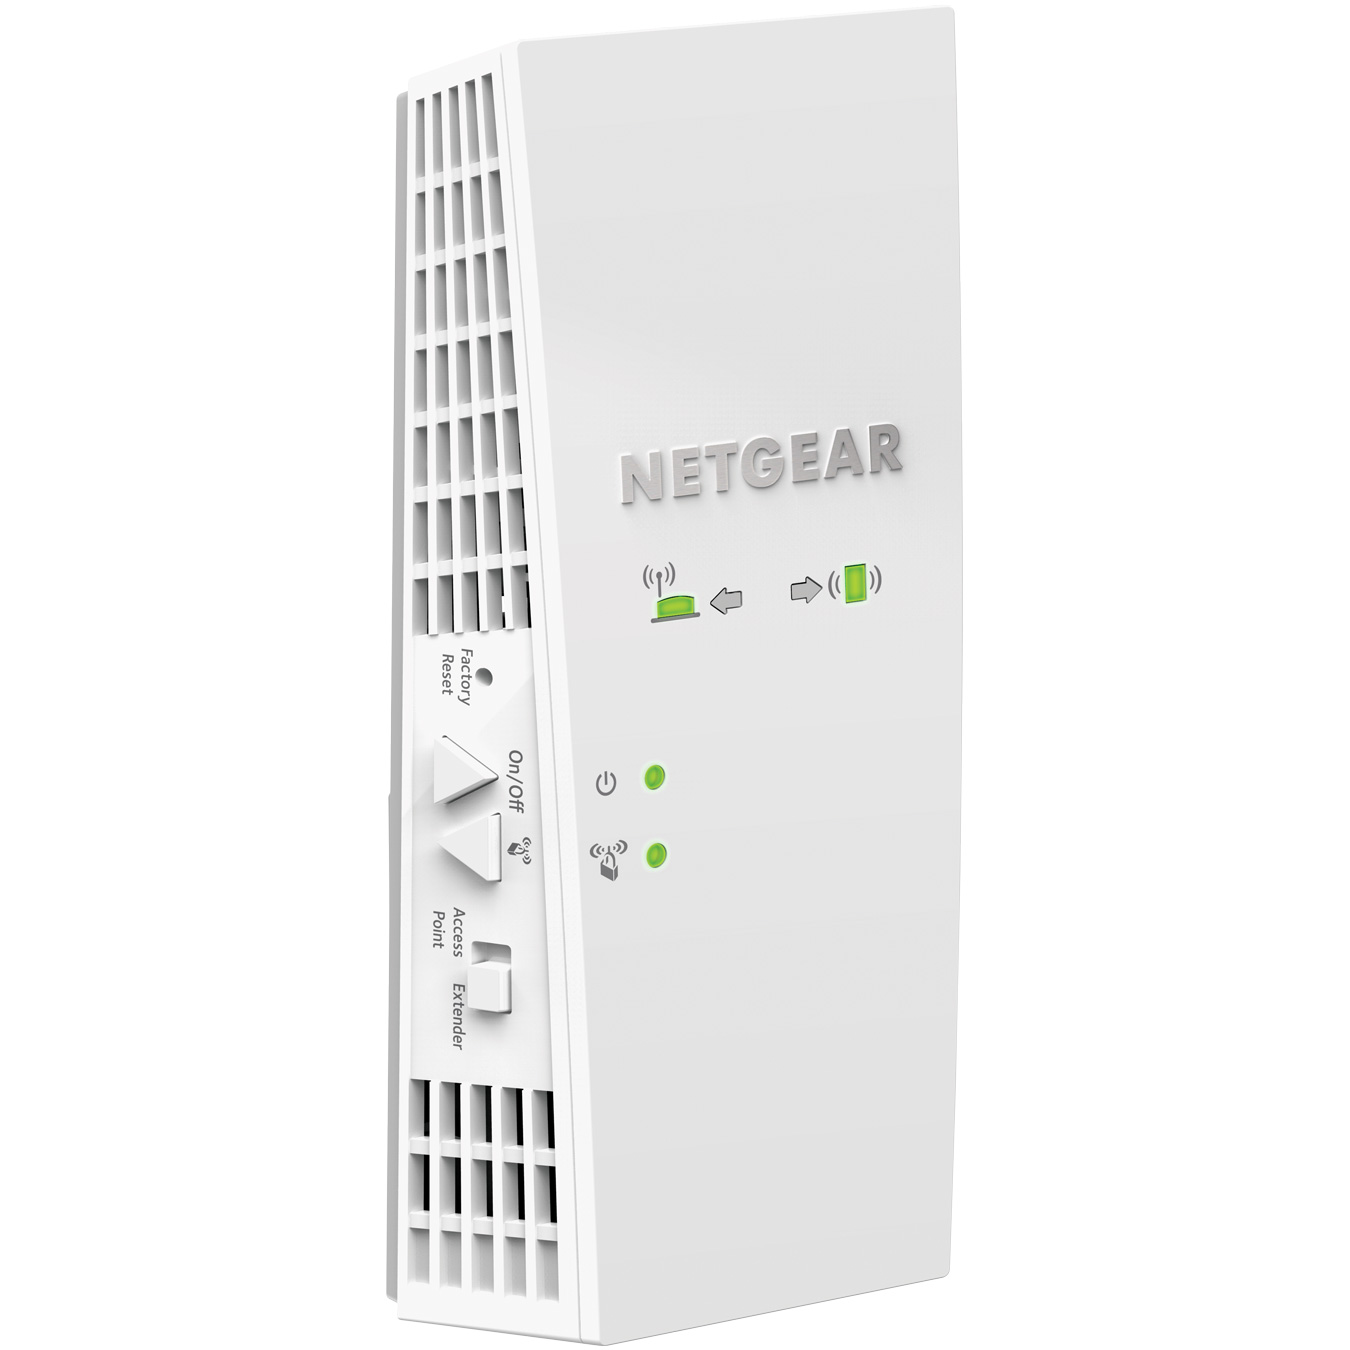 netgear ex6400 r p teur wi fi netgear sur. Black Bedroom Furniture Sets. Home Design Ideas